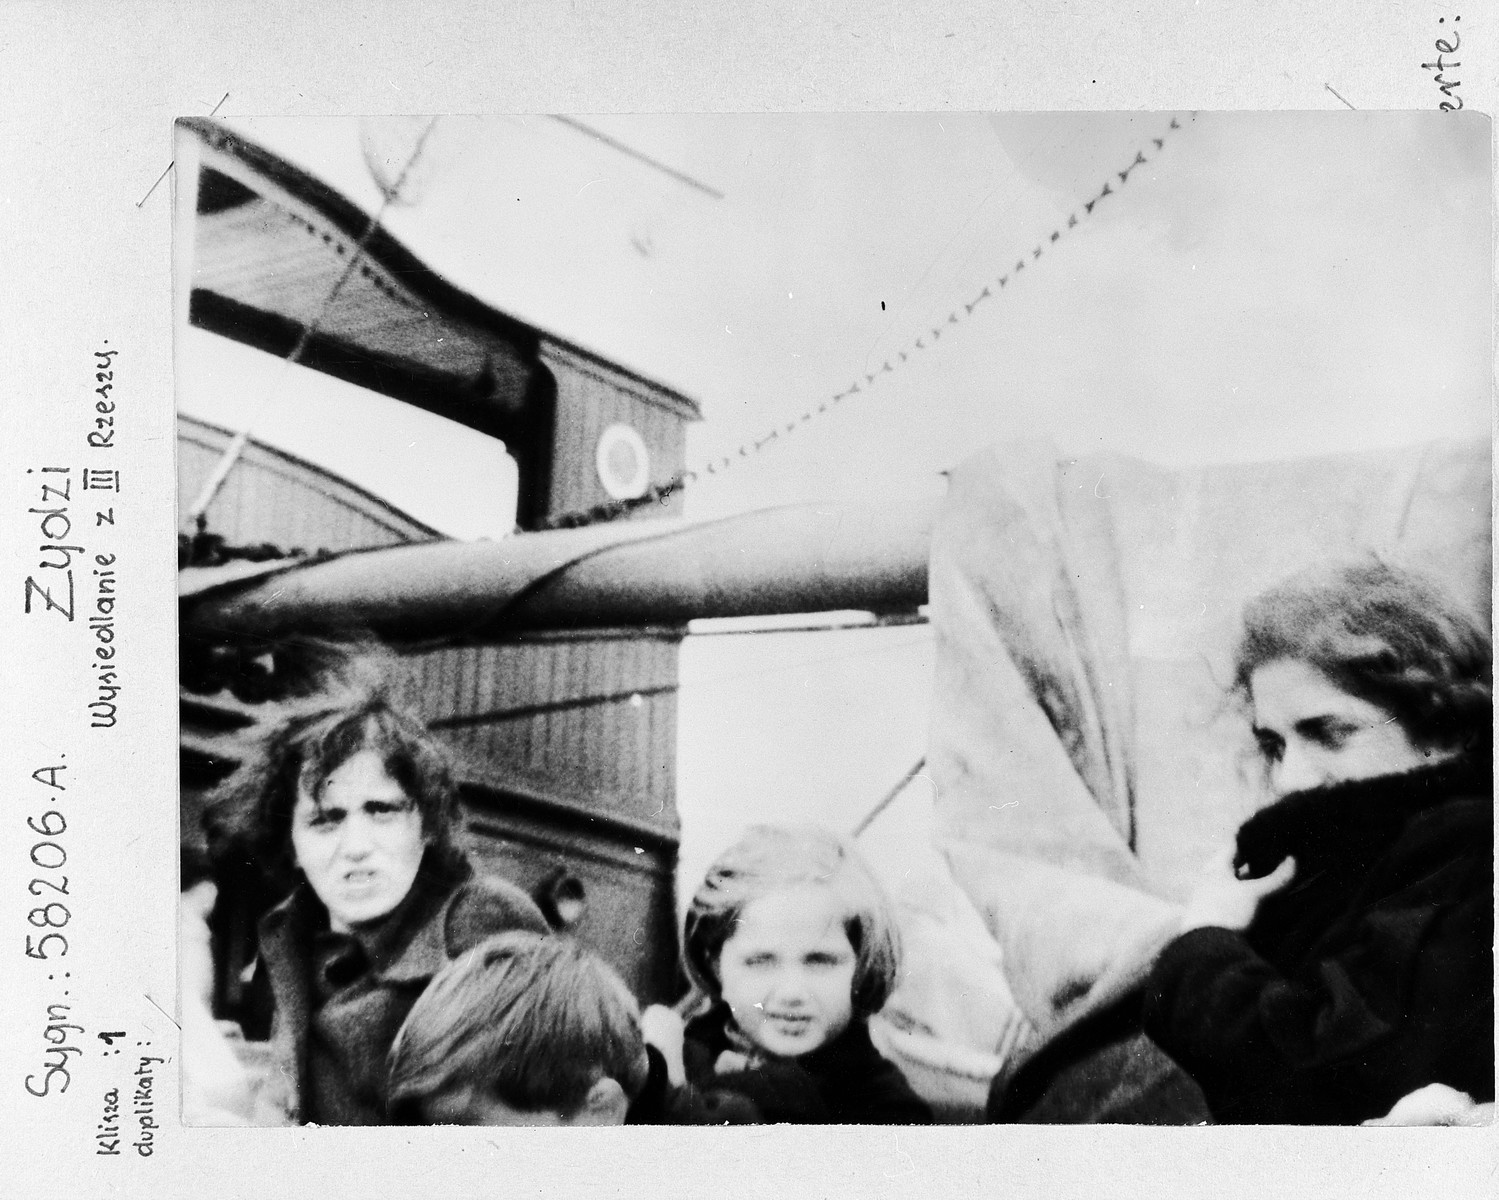 A group of German-Jewish refugee women and children aboard a Greek vessel [the Aghia Dezioni] on their way to Palestine.    One hundred seventy  Jewish refugees came to Fiume, Italy and were placed aboard a small Greek coastal steamer. Their passports contained visas for China. However, when the ship reached the open sea, their passports were forcibly taken and thrown into the sea. The refugees were told they would disembark in Palestine. After 36 days of floundering in the eastern Mediterranean and severe mistreatment aboard ship, 120 refugees managed to enter Palestine. There they were discovered by the British army and placed in the Sarafend camp for new immigrants.